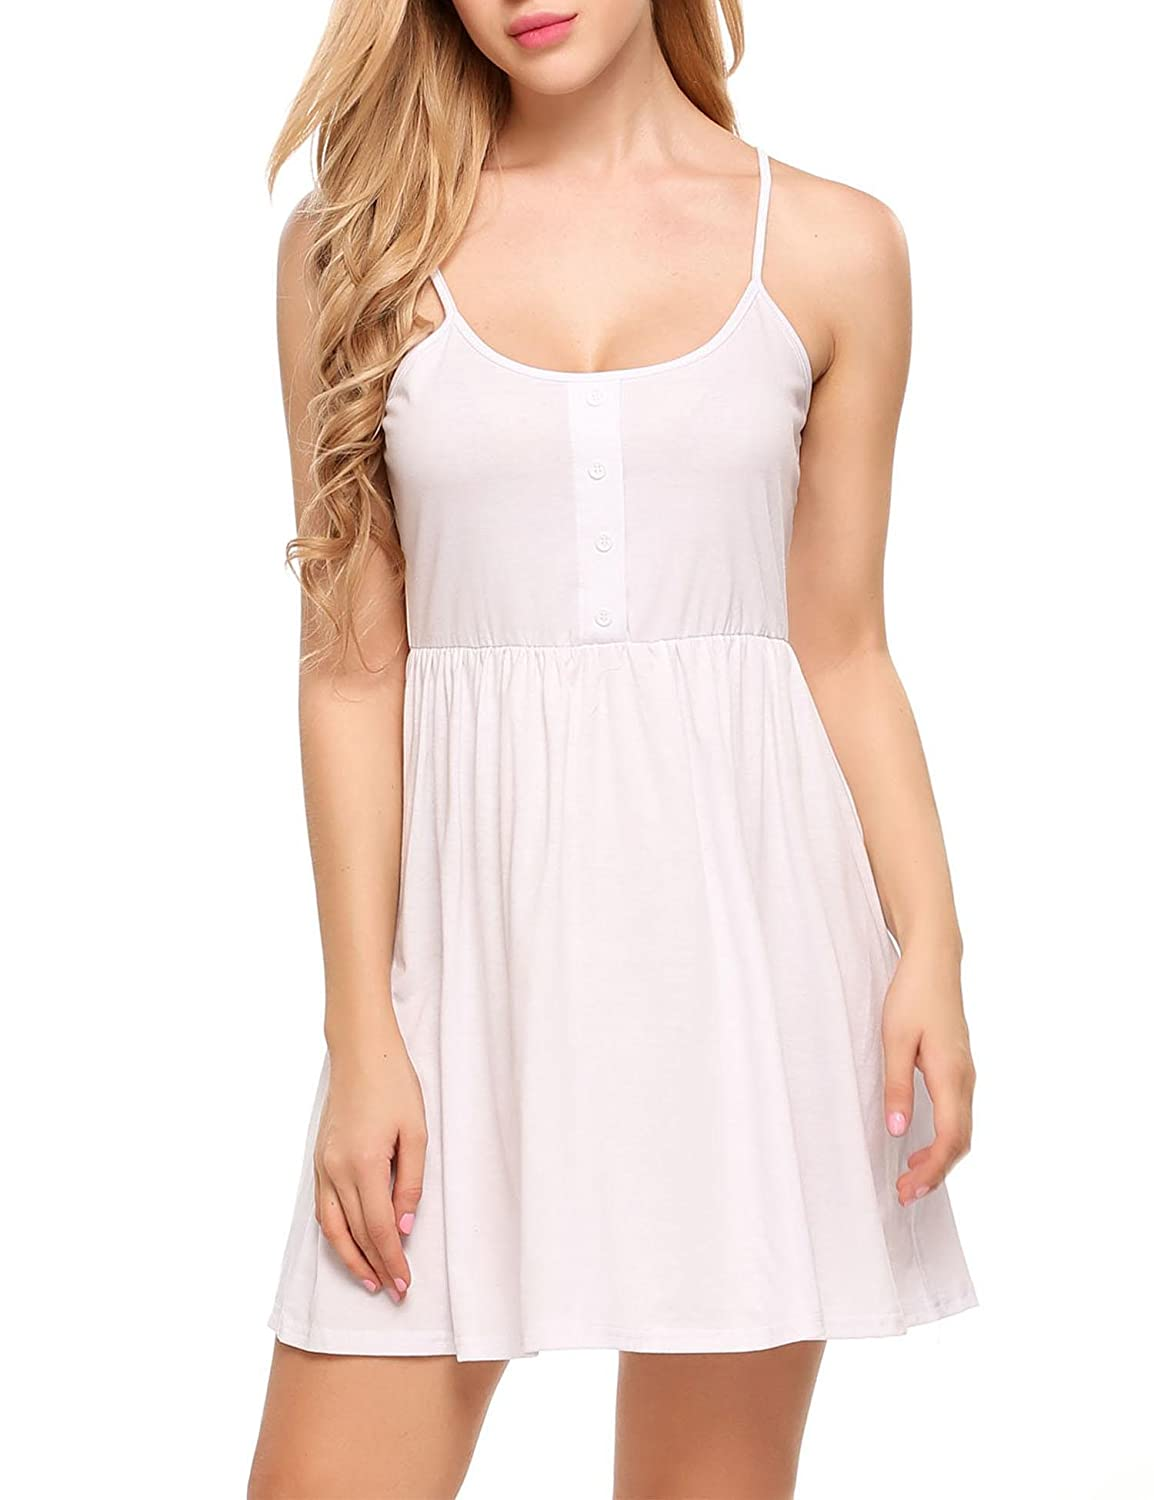 b5a7c7fe1b85f ... sleeveless, high waist with button placket detail, A-Line, scoop neck,  above knee length, solid color. Basic and classy design cami slip dress, ...